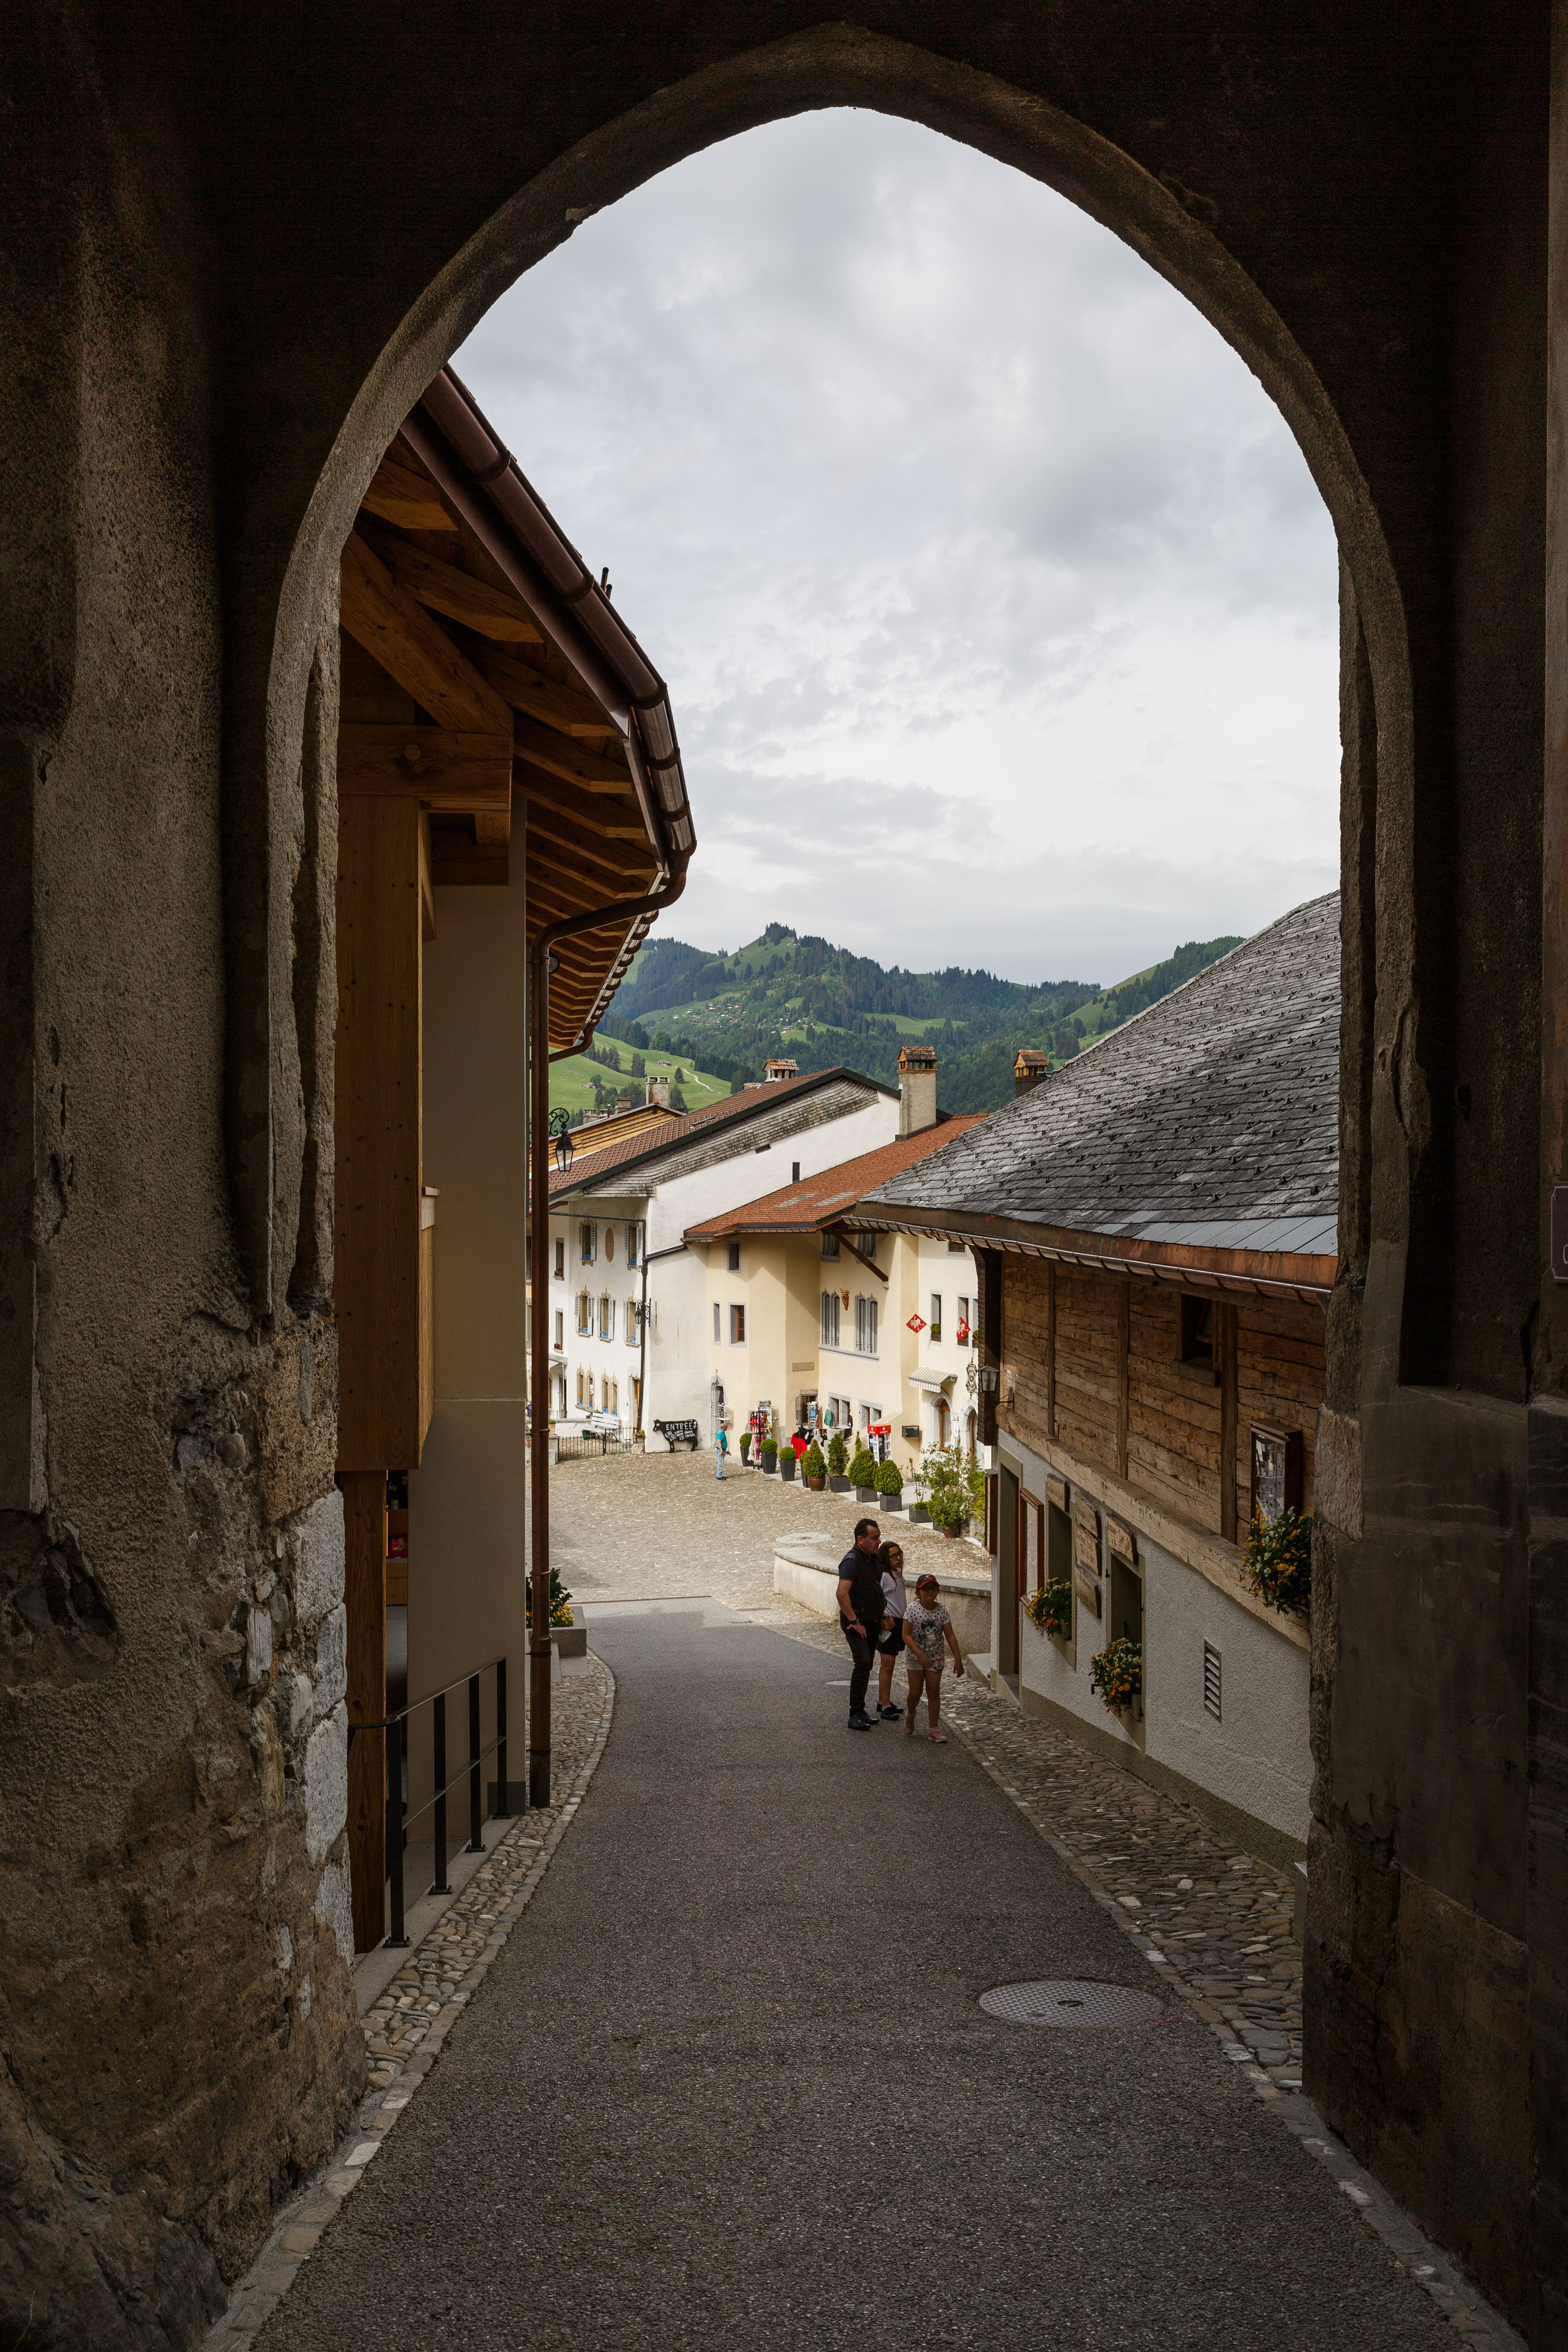 Looking back at Gruyeres from the entrance to the Castle